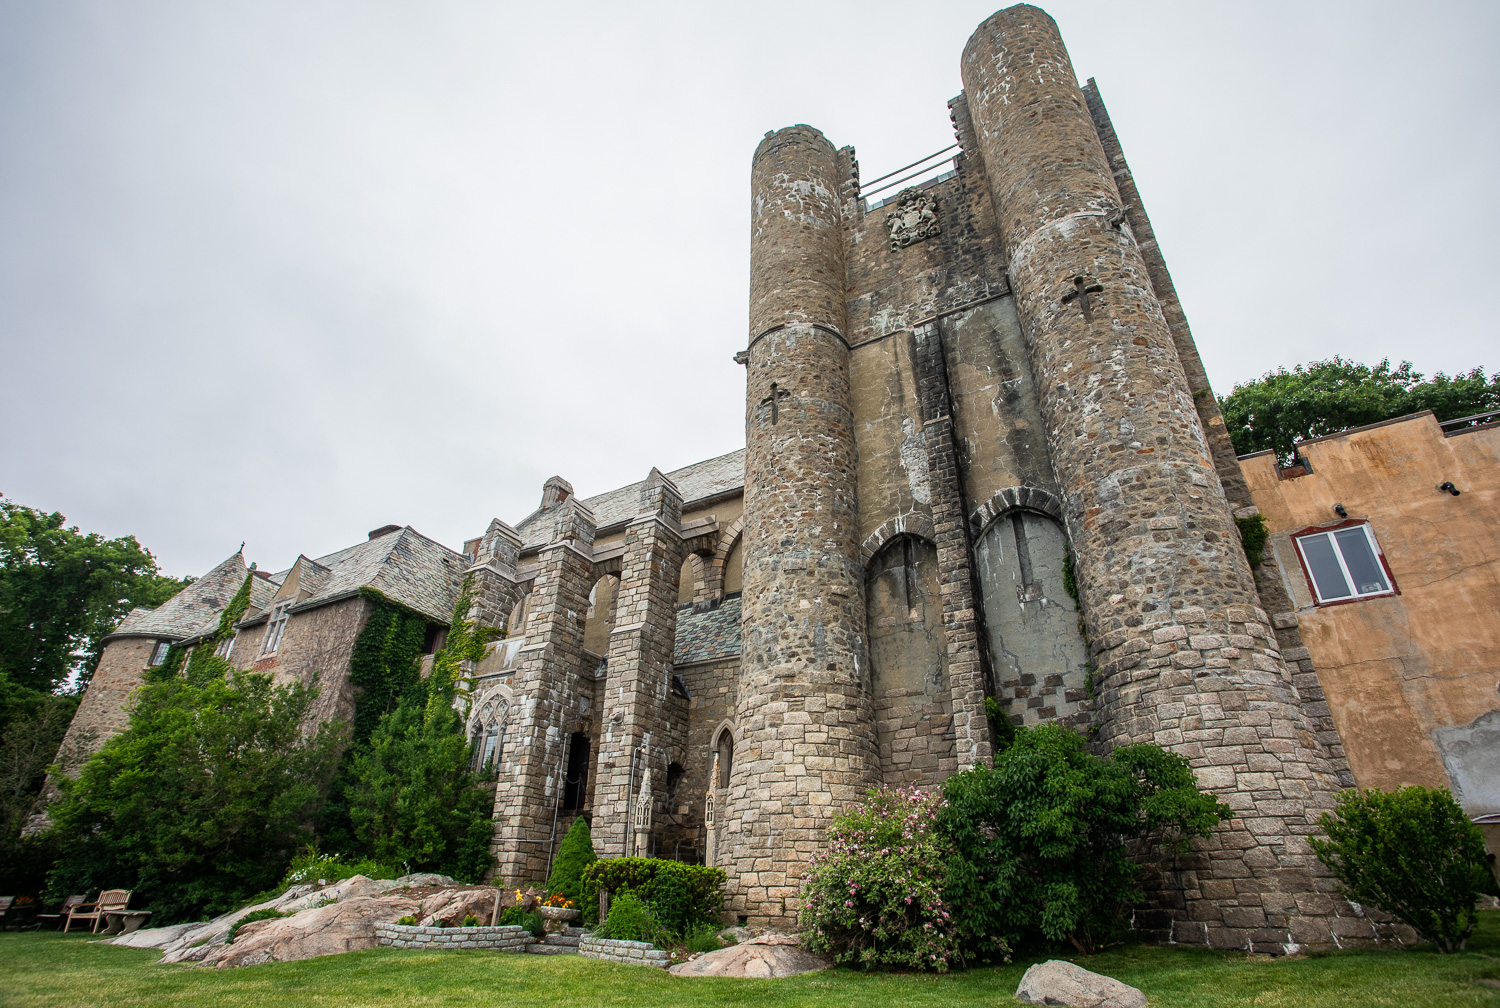 View of the Hammond Castle from the backyard of the residence. The backyard overlooks the Atlantic ocean.